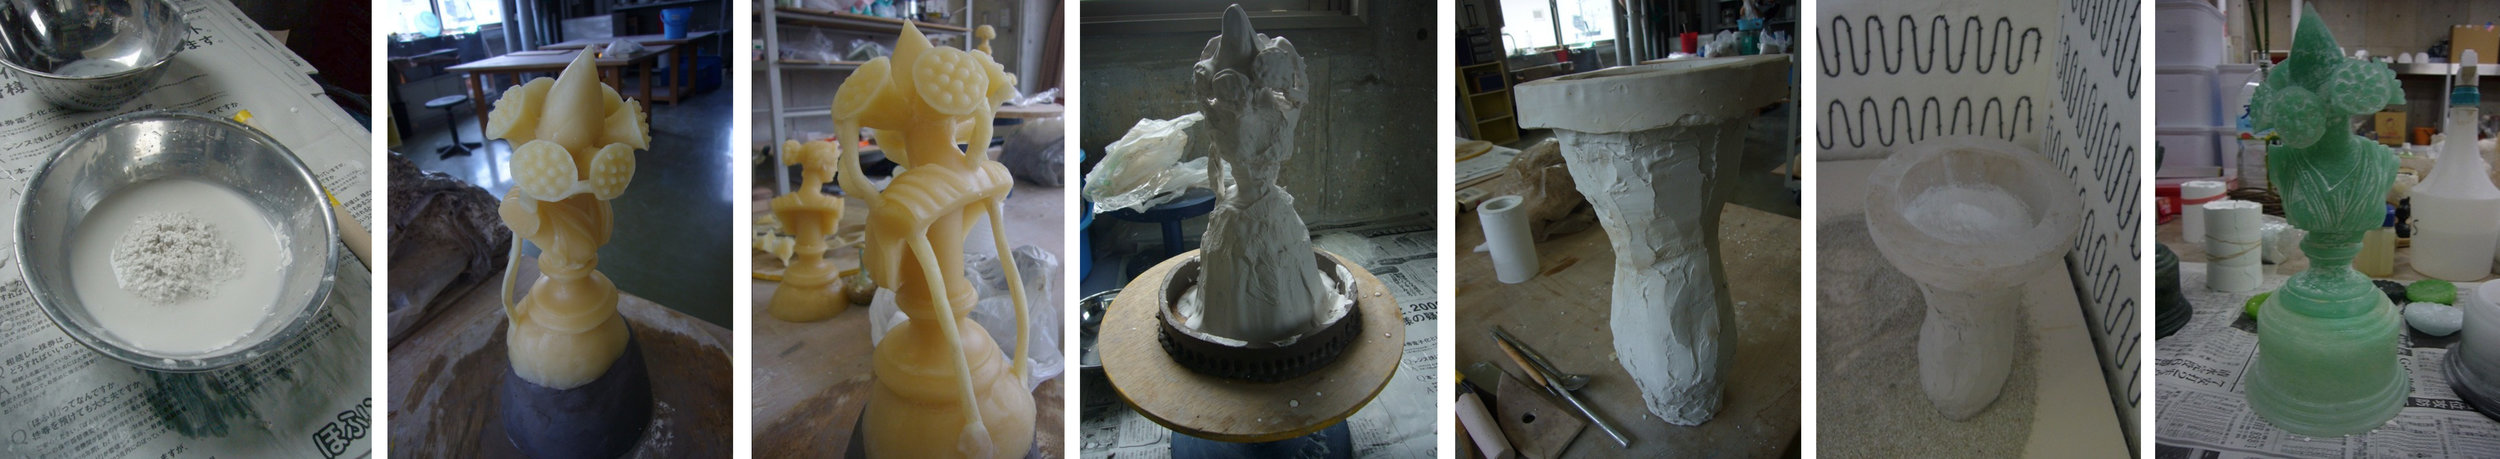 The process of making a refractory mold for  Vestige , cast using the lost wax casting process. Debra Ruzinsky made this work when she was part of the Seto International Glass and Ceramics Exchange program in 2008.